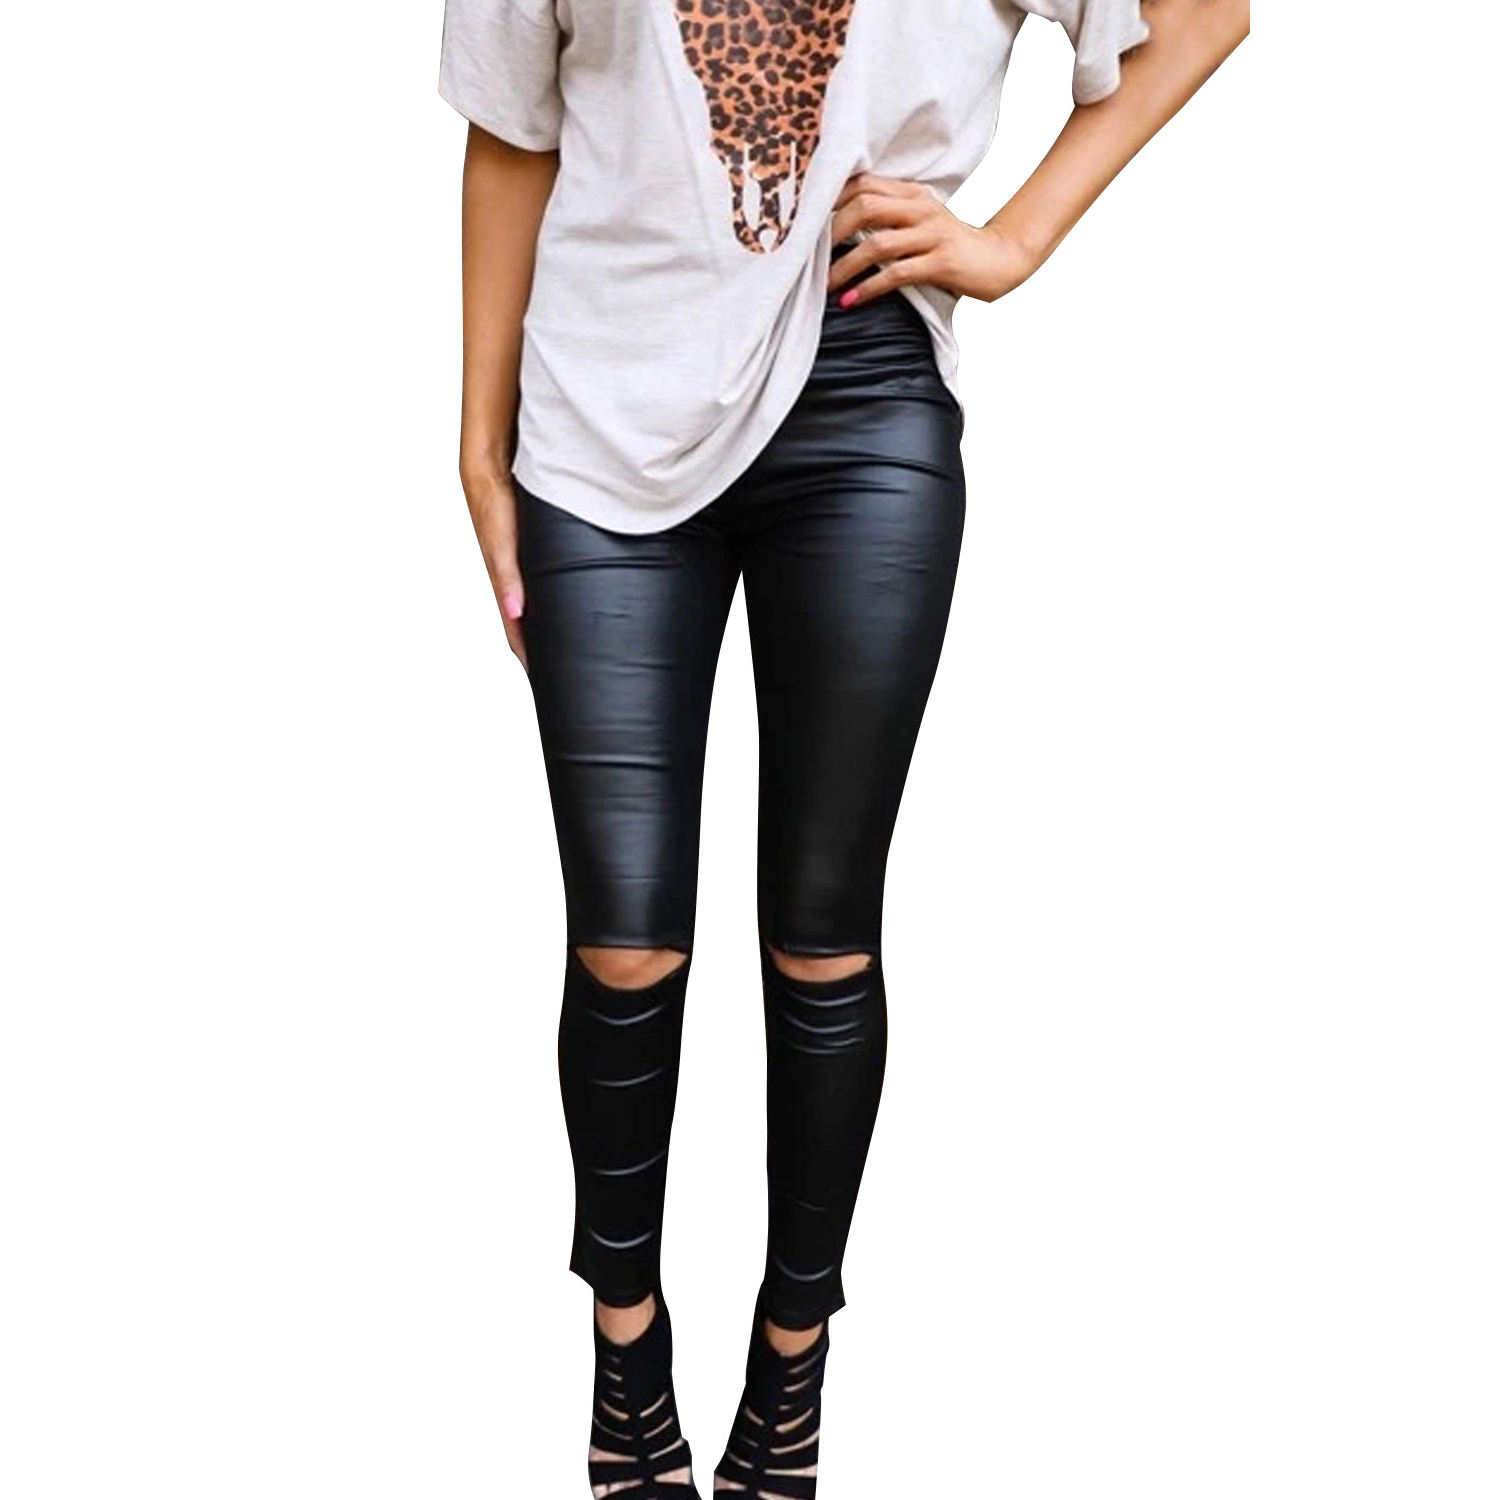 Hot Girls Sexy Tight Pants Black Skinny Faux Leather Leggings for Women